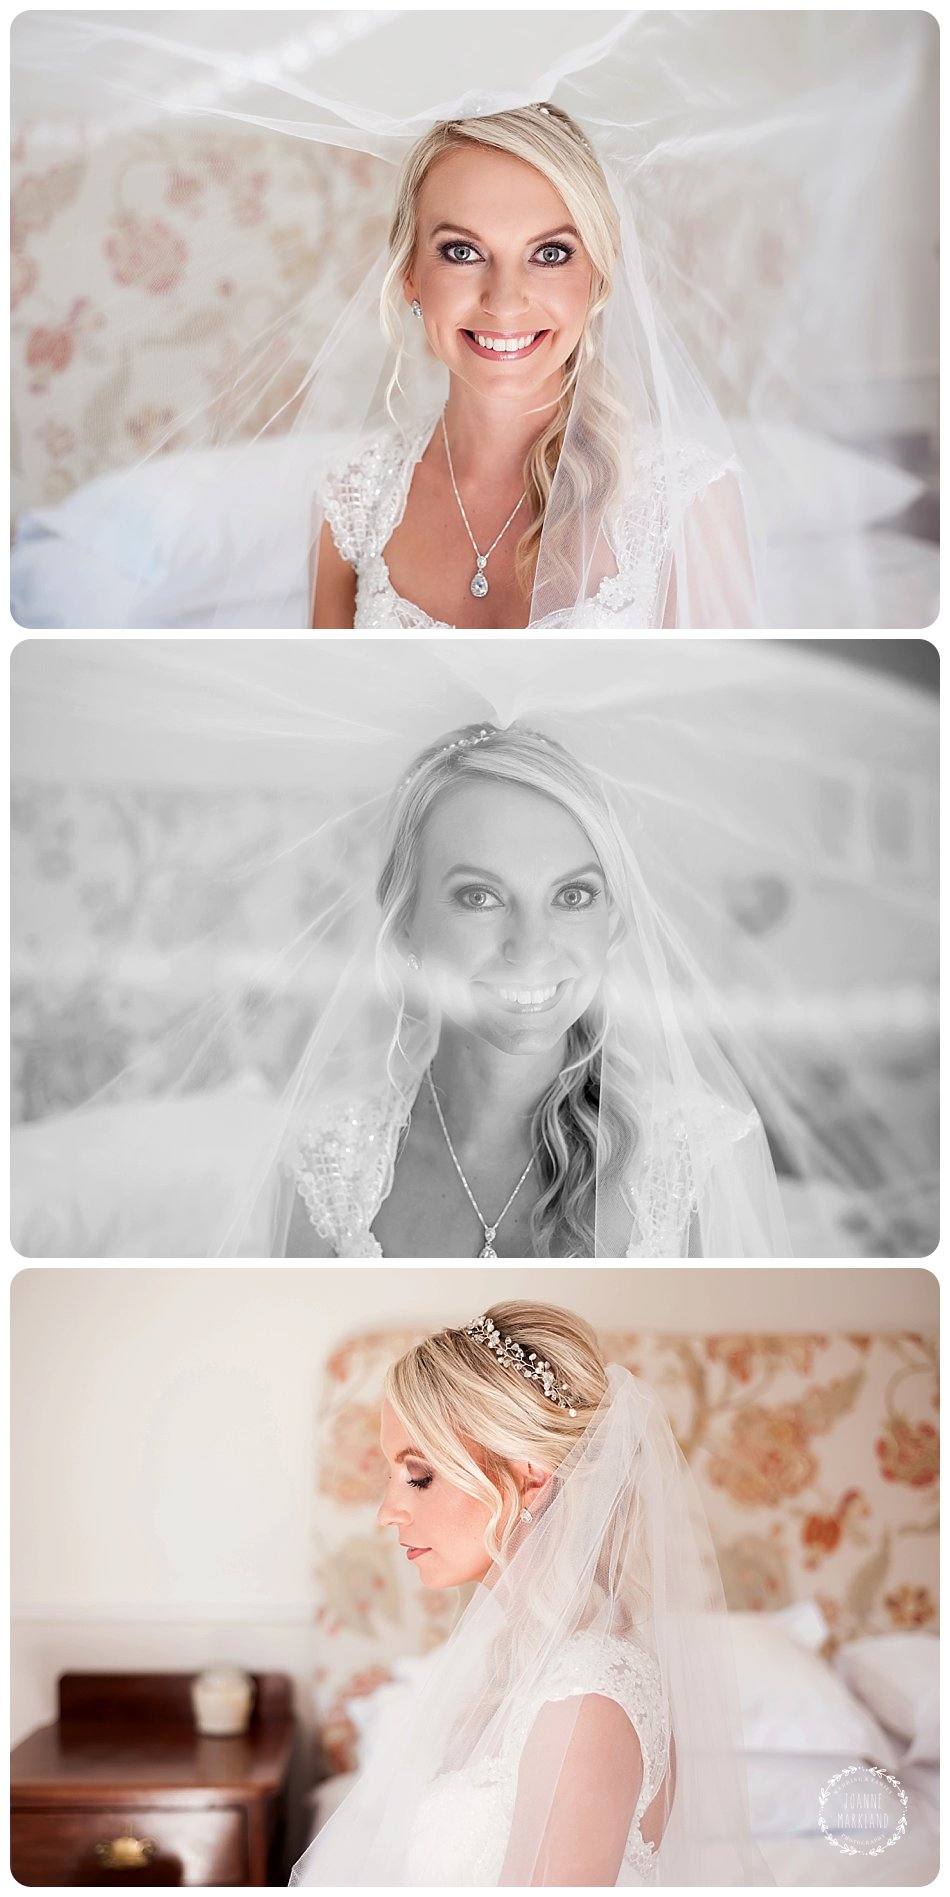 Steenberg_wedding_cape_town_photography_joanne_markland_photographer-022